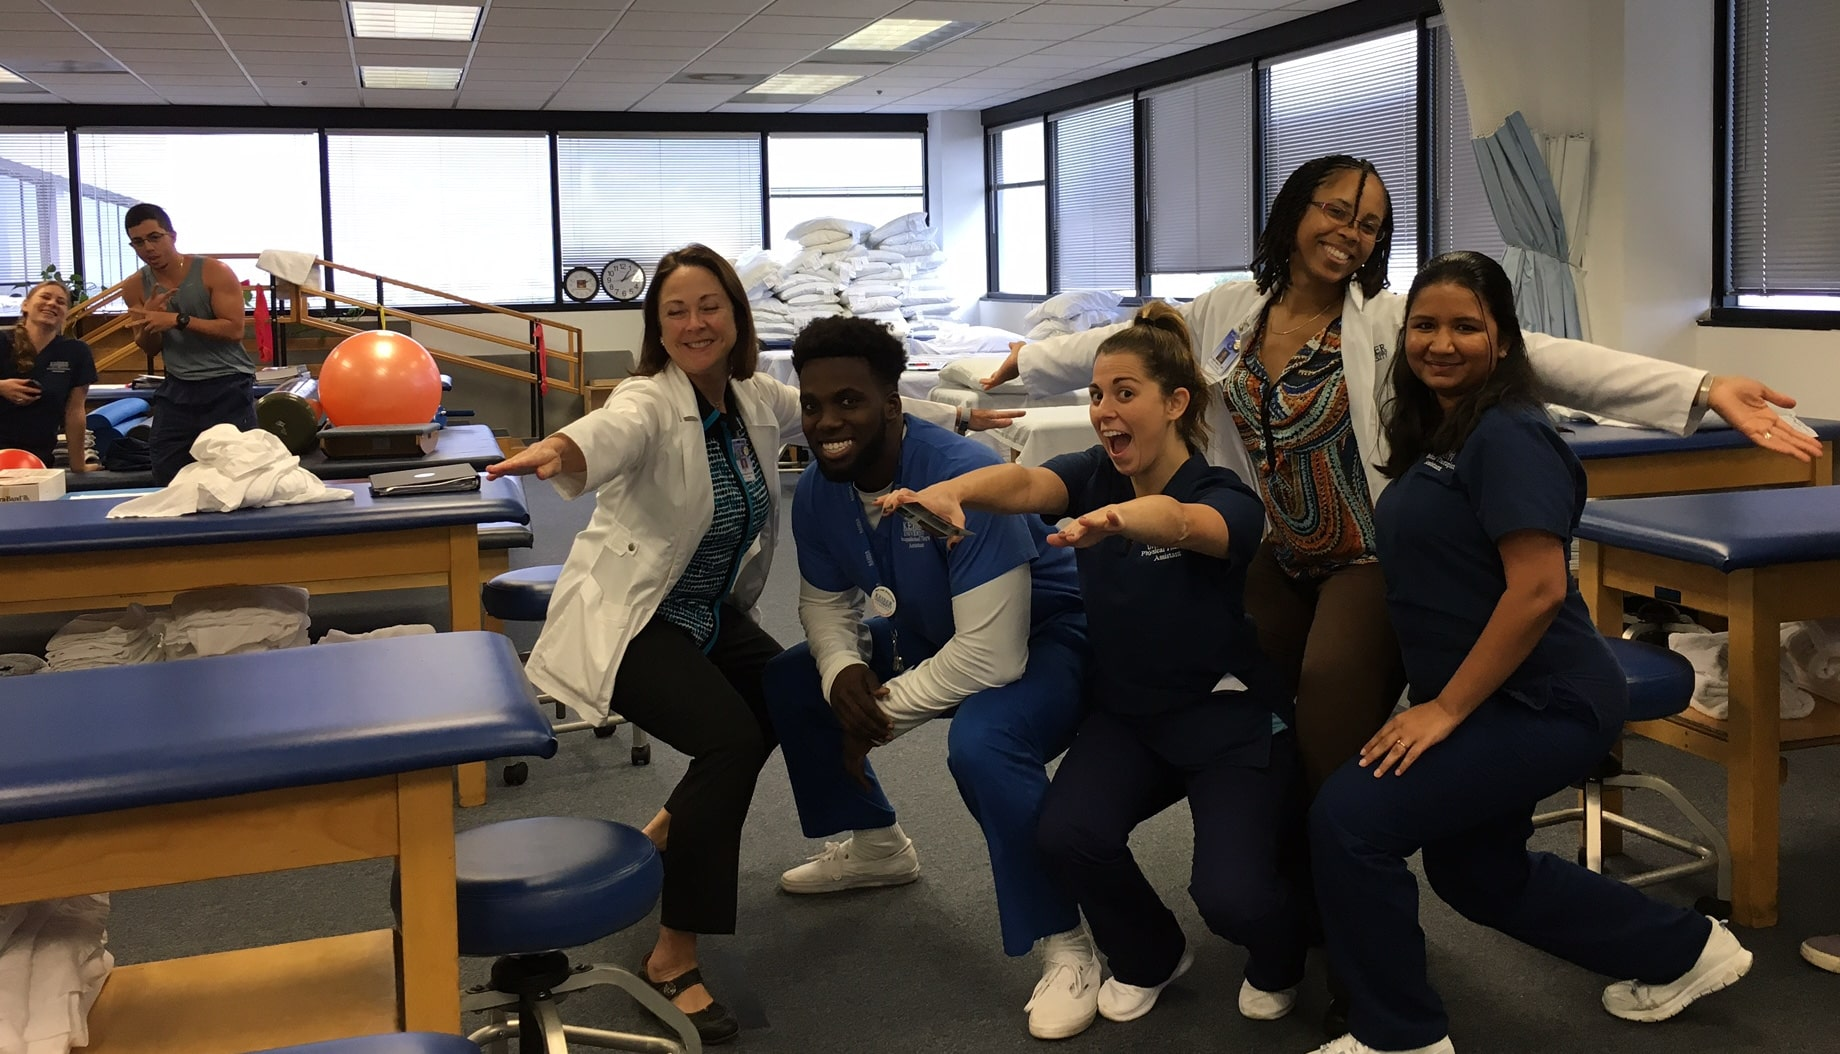 Ft. Lauderdale's Student Physical Therapy Association Celebrates Physical Therapy Month